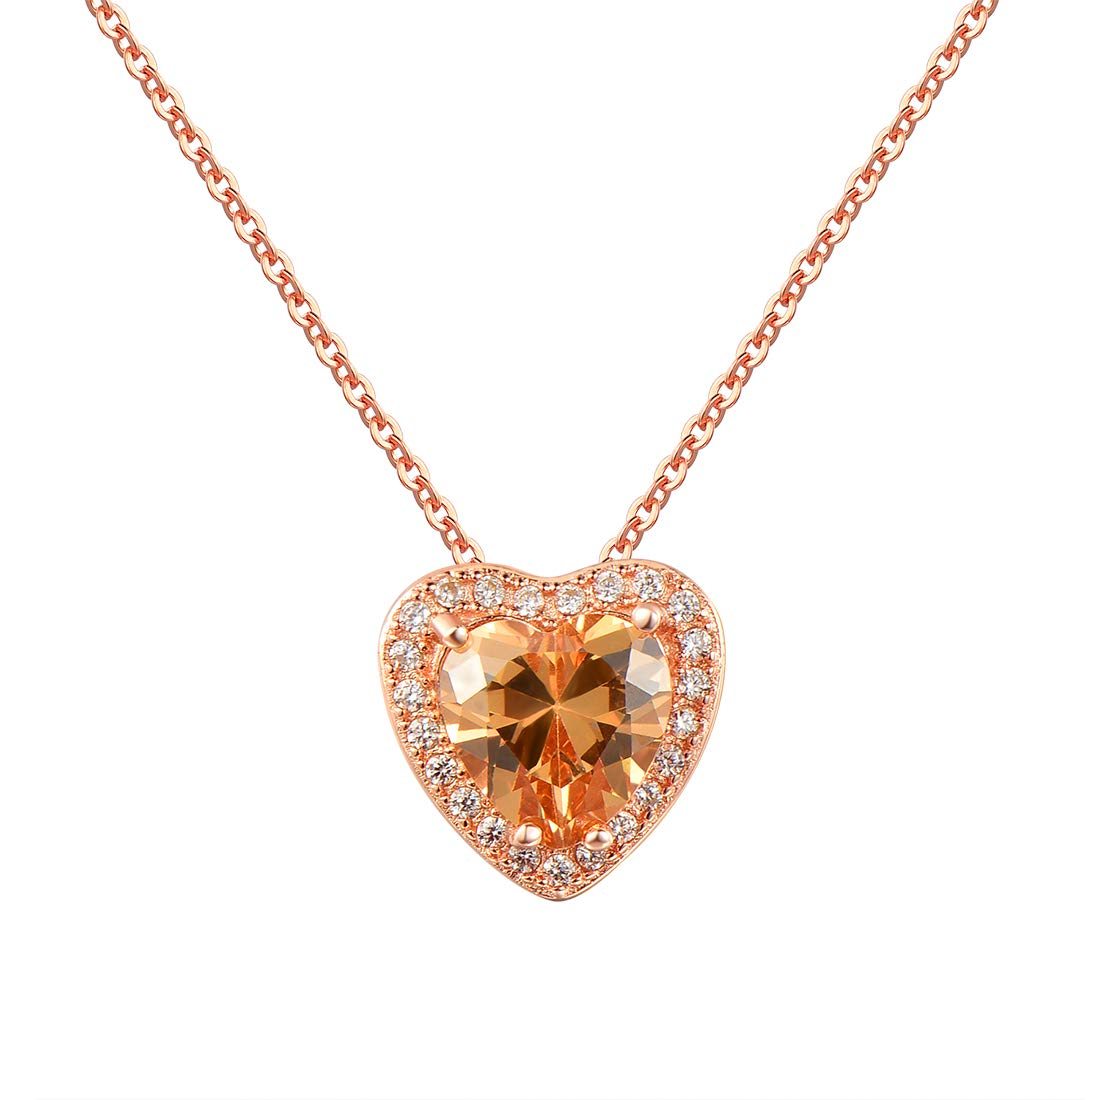 Mouttop Cubic Zirconia Pendant Necklace,Heart Pendant with Roes Gold Plated Necklace for Women